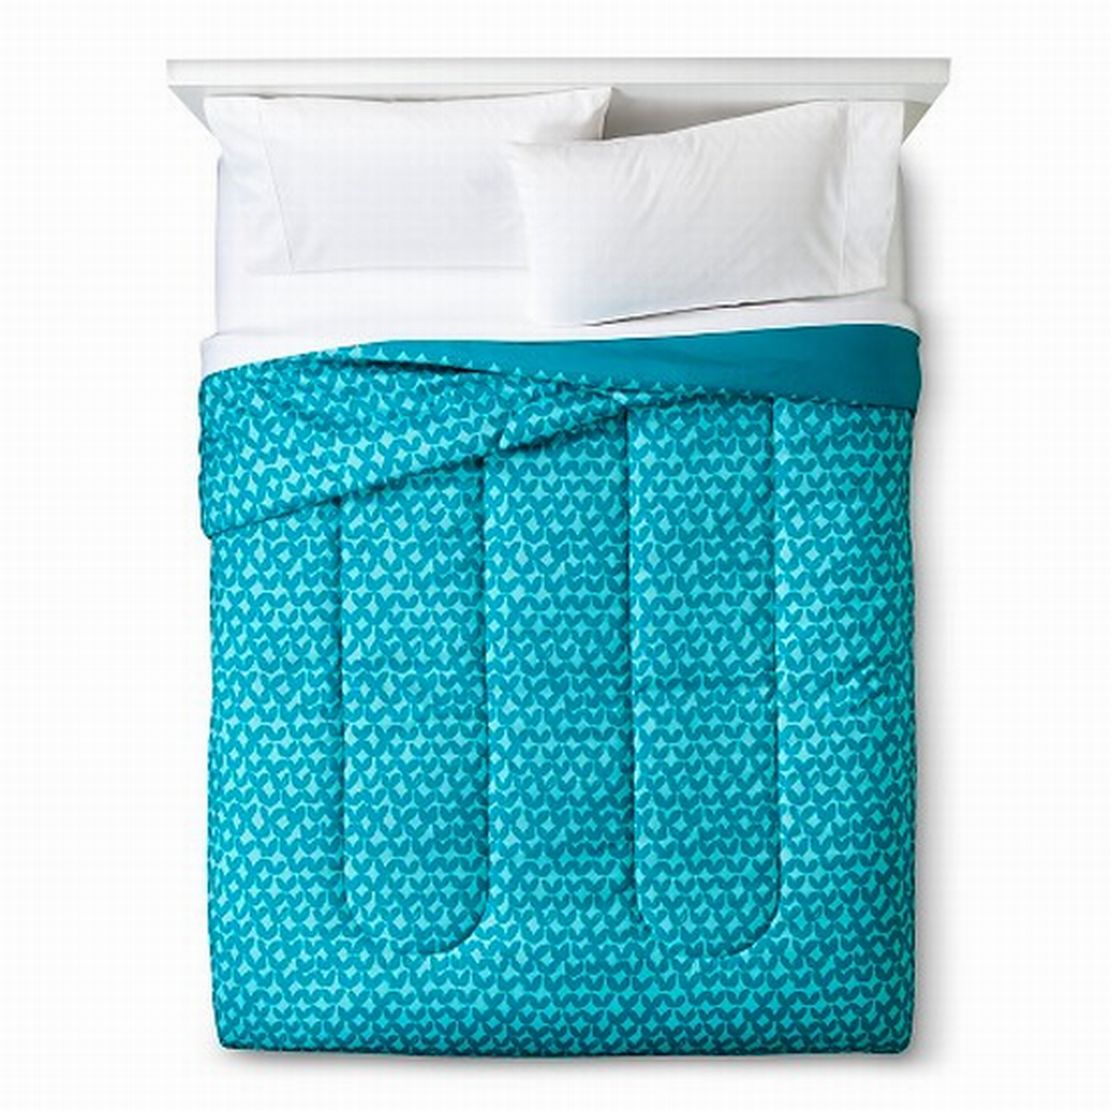 Room Essentials Twin XL Turquoise Petal Reversible Comforter Dorm Bed